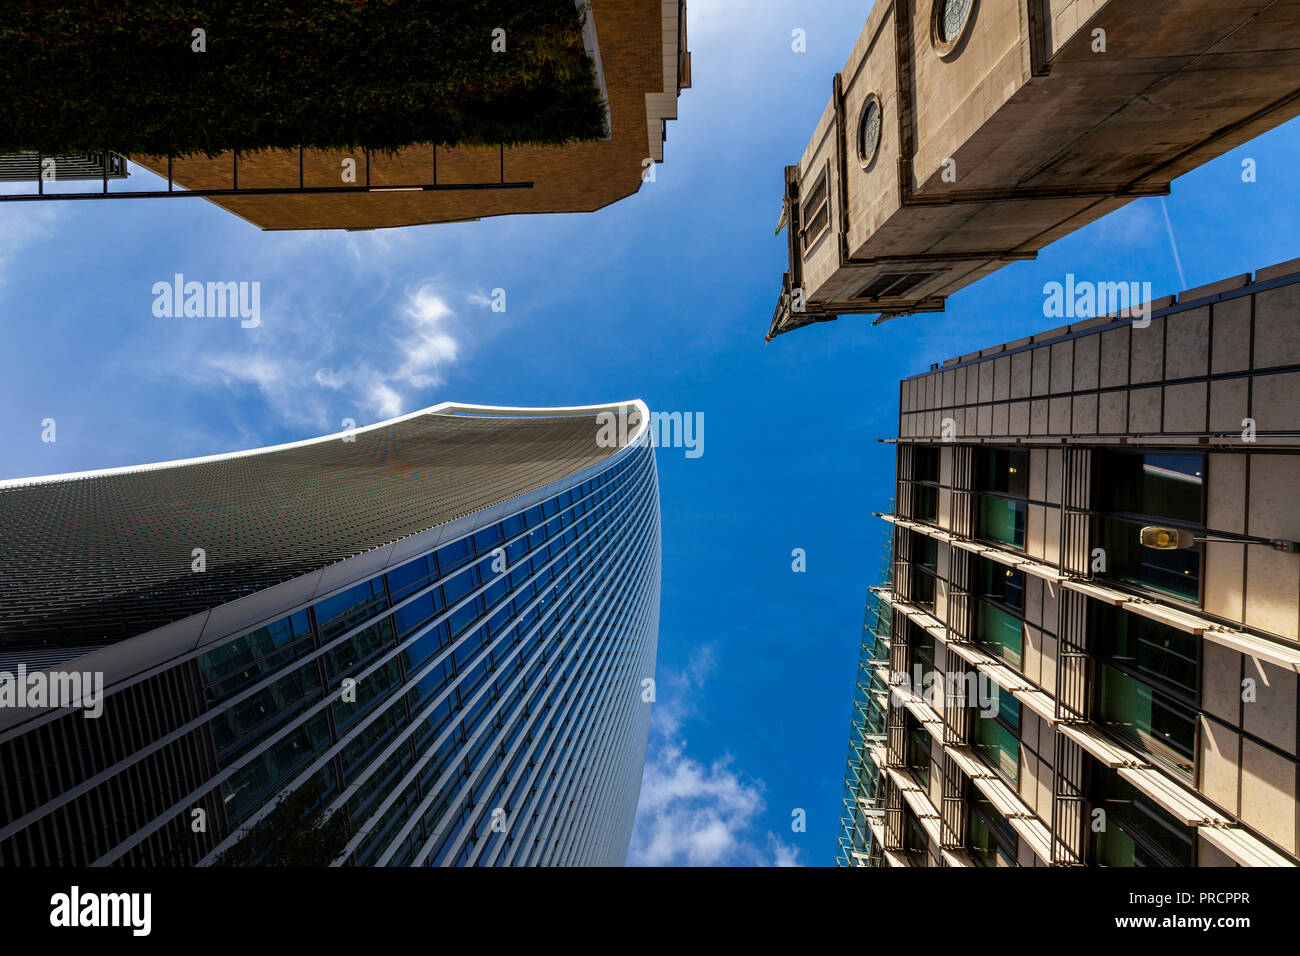 Four high-rise buildings - worm's eye view, Rood Lane near 20 Fenchurch Street London (Walkie-Talkie) - Stock Image